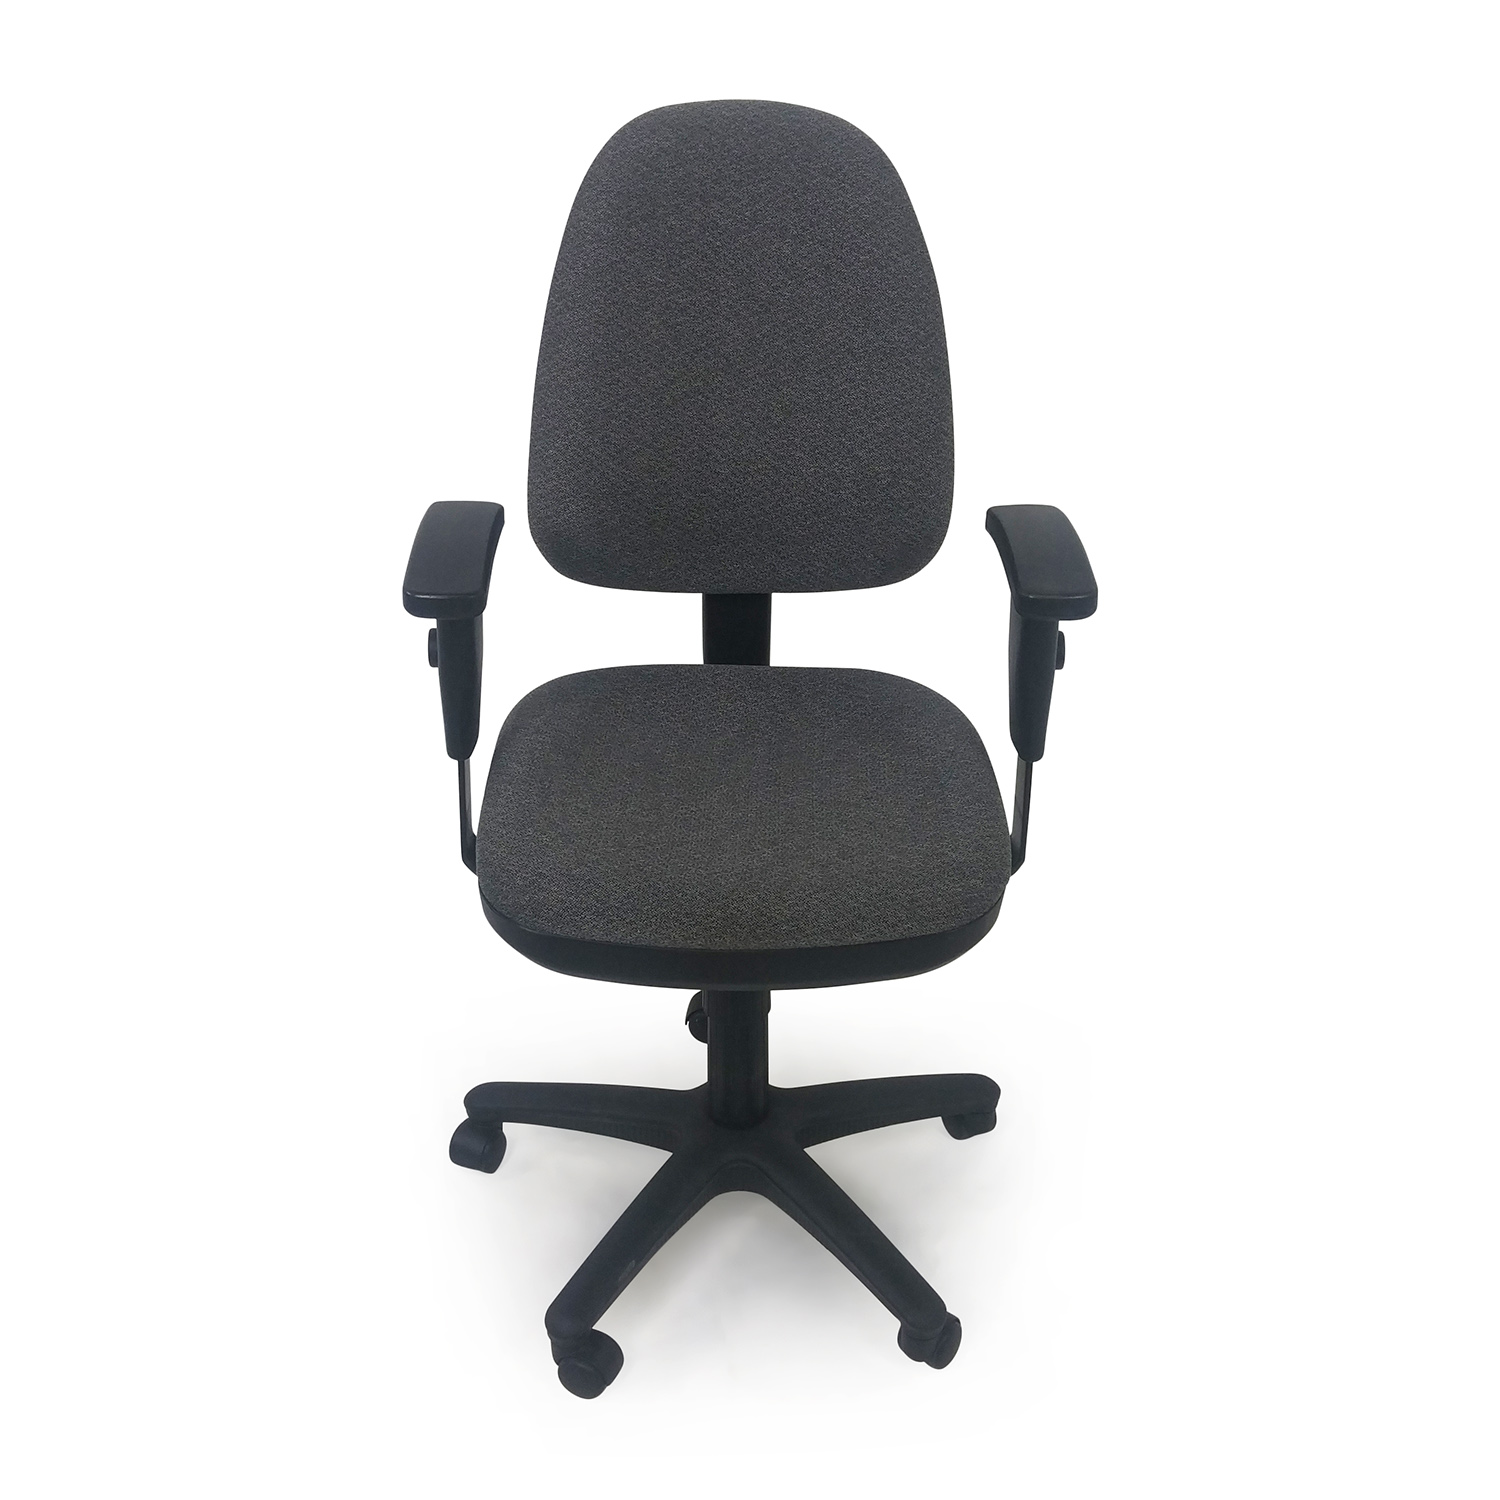 Ergonomic Office Chair dimensions